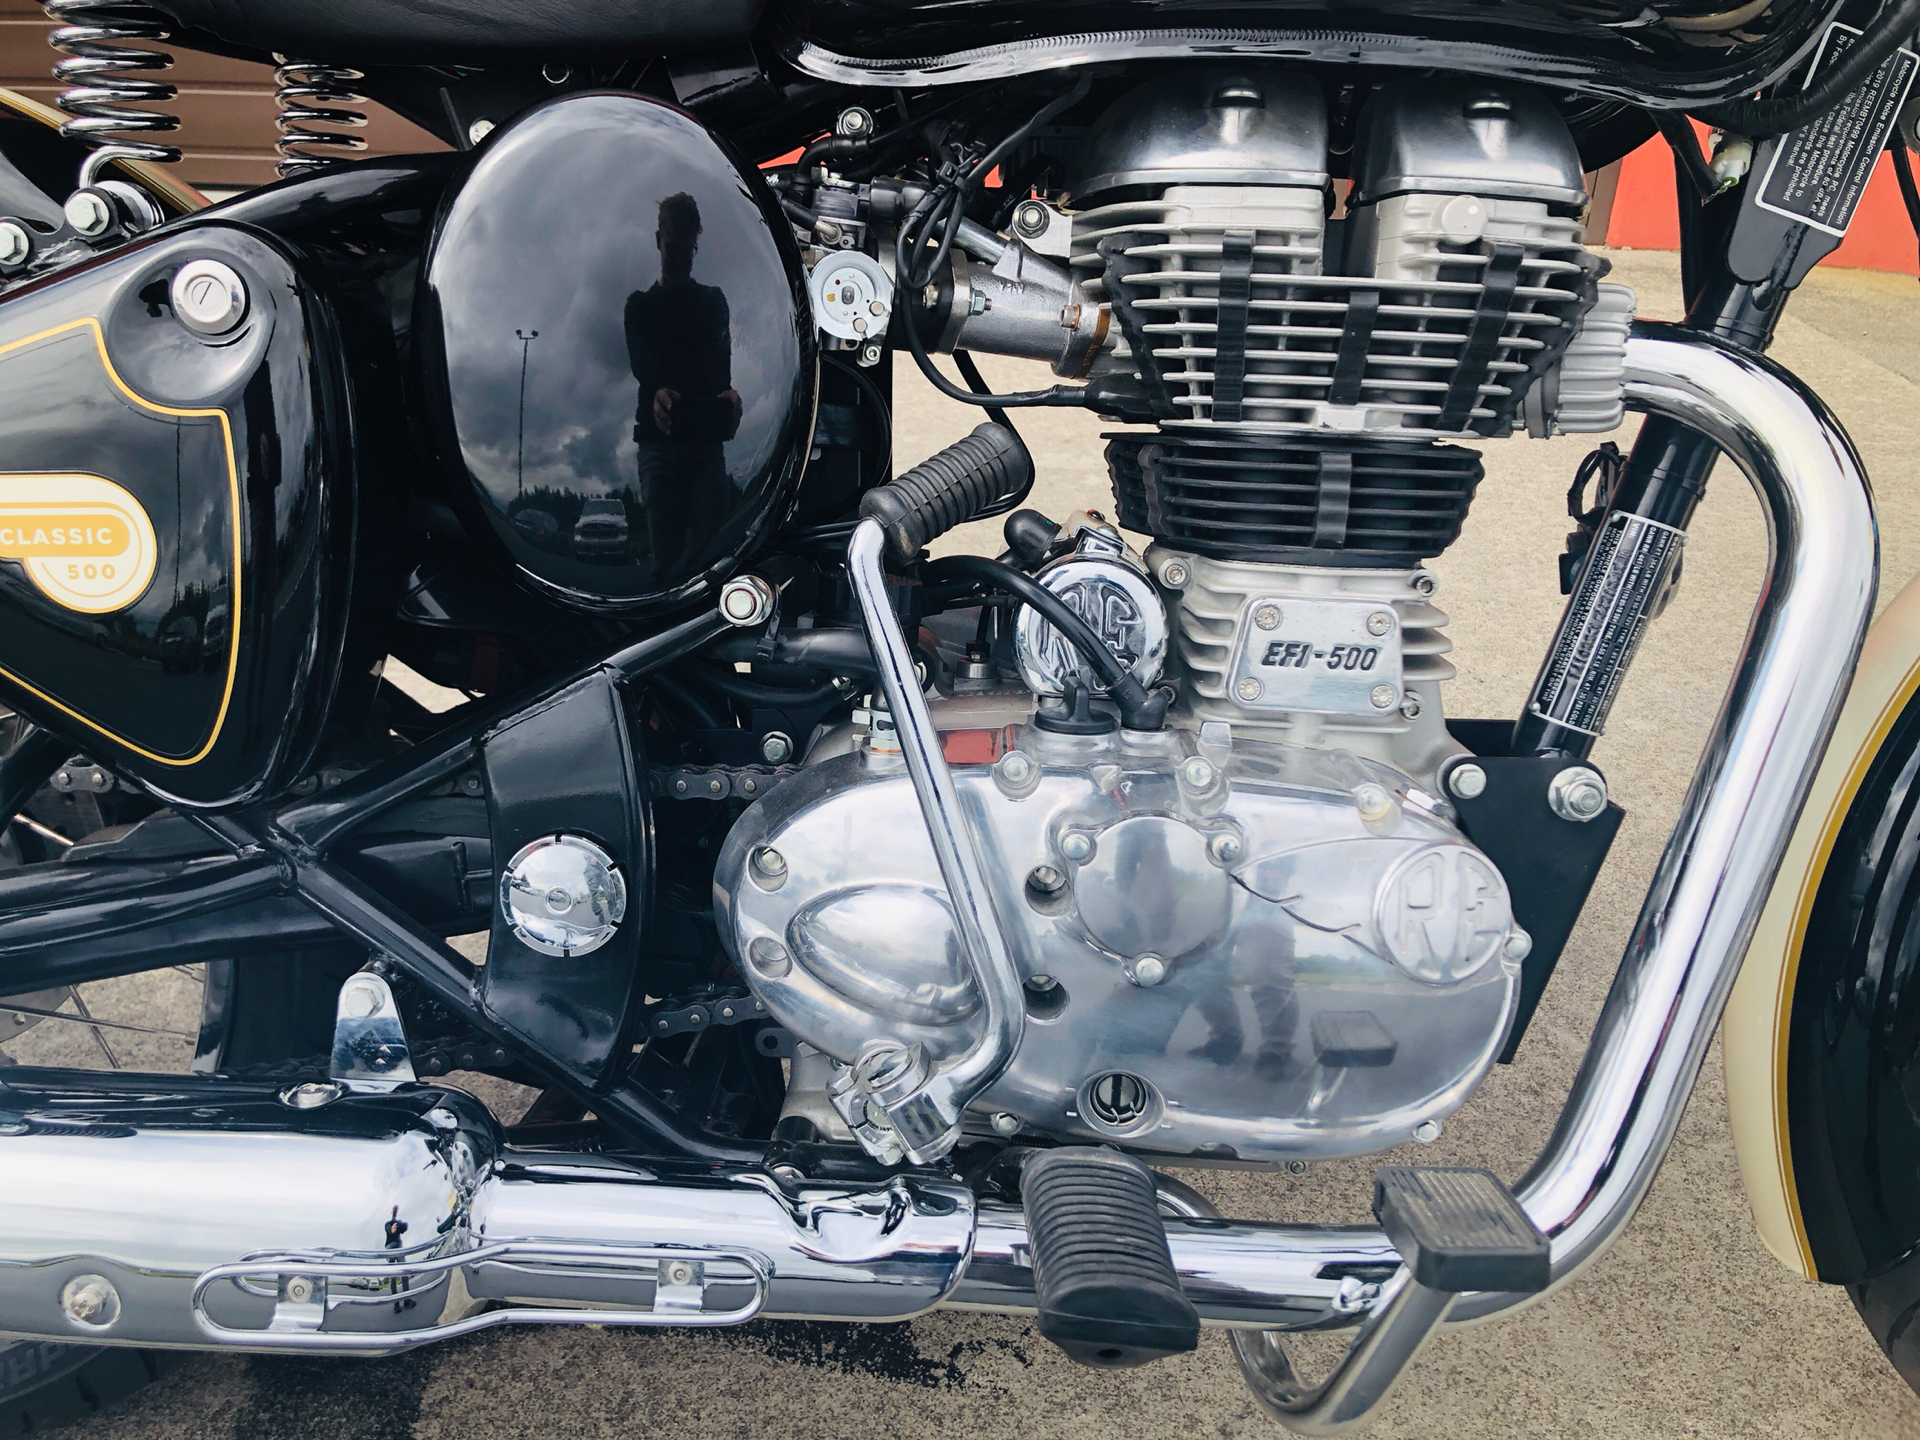 2019 Royal Enfield Classic 500 ABS in Burlington, Washington - Photo 3